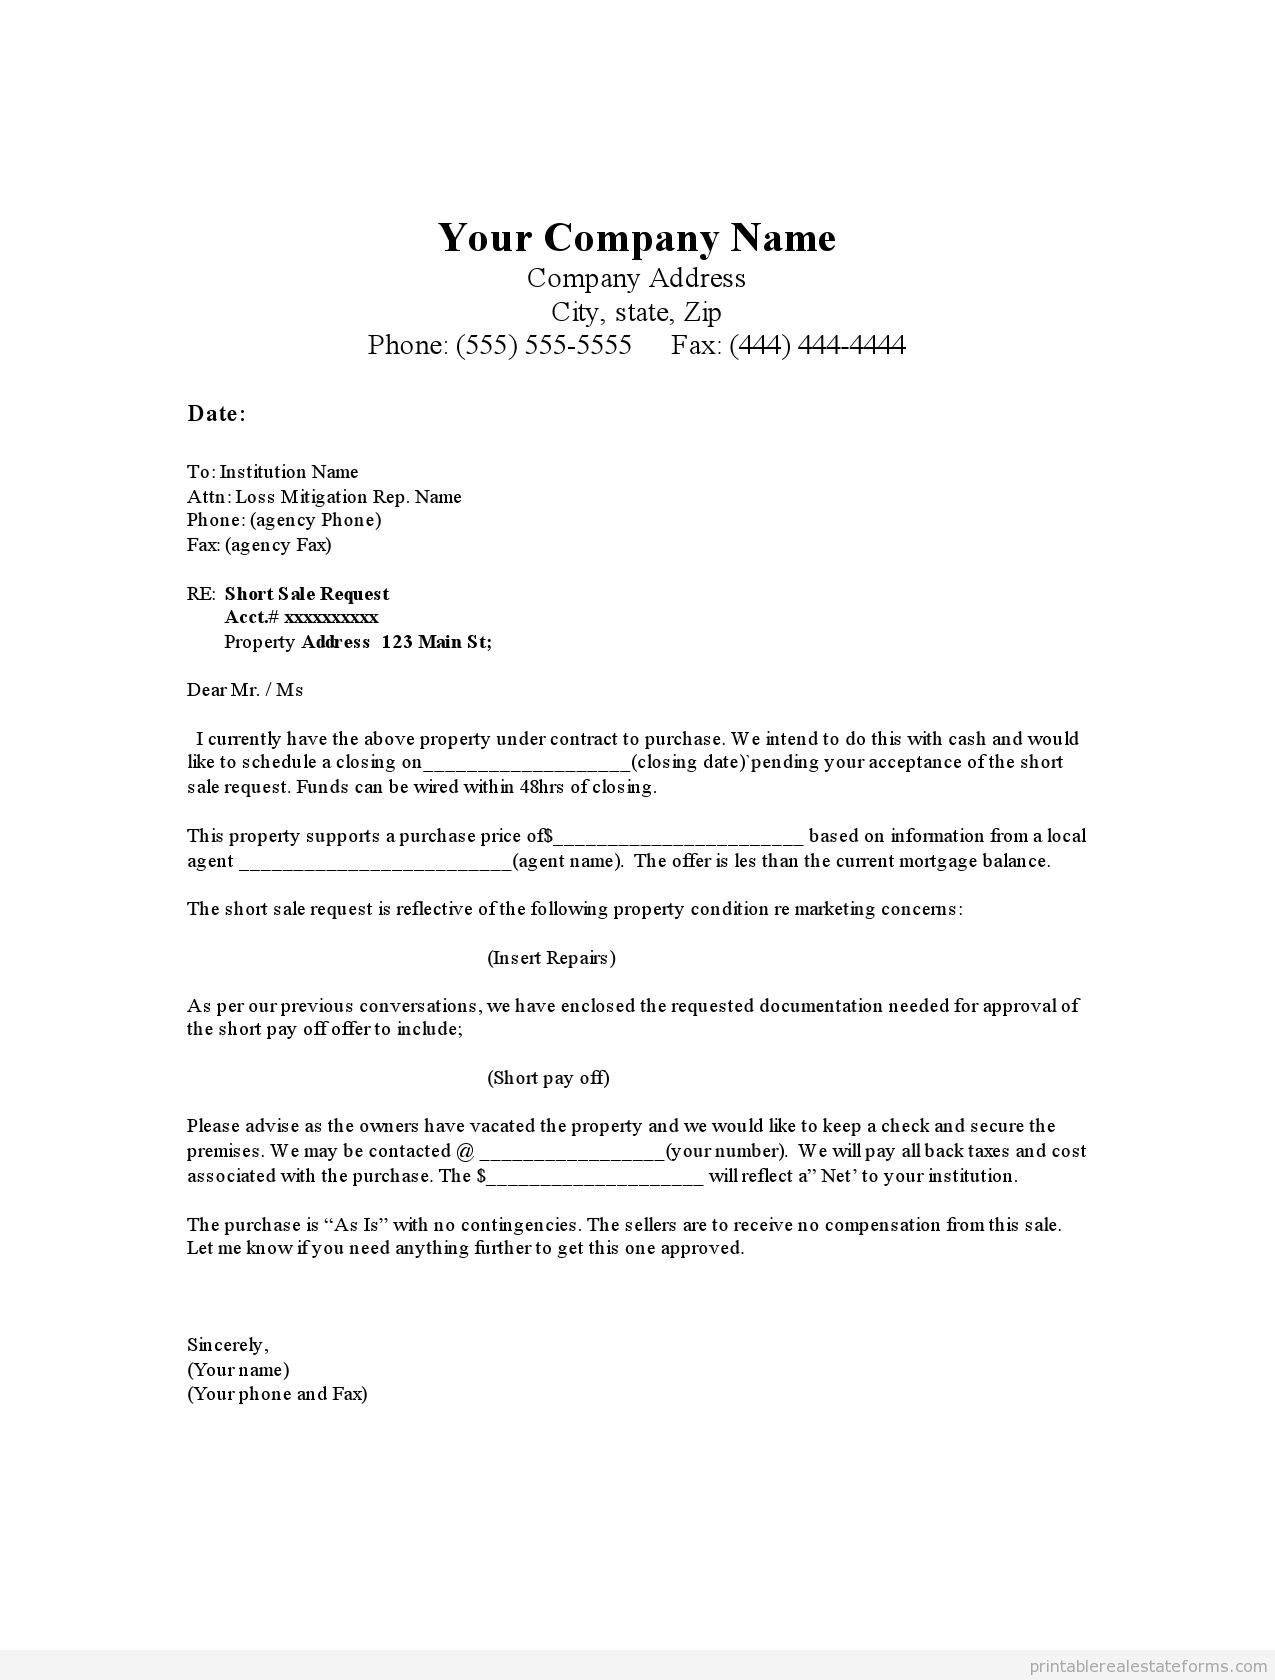 home purchase offer letter template example-Home Fer Letter Template Home fer Letter Sample Ideas 13-h